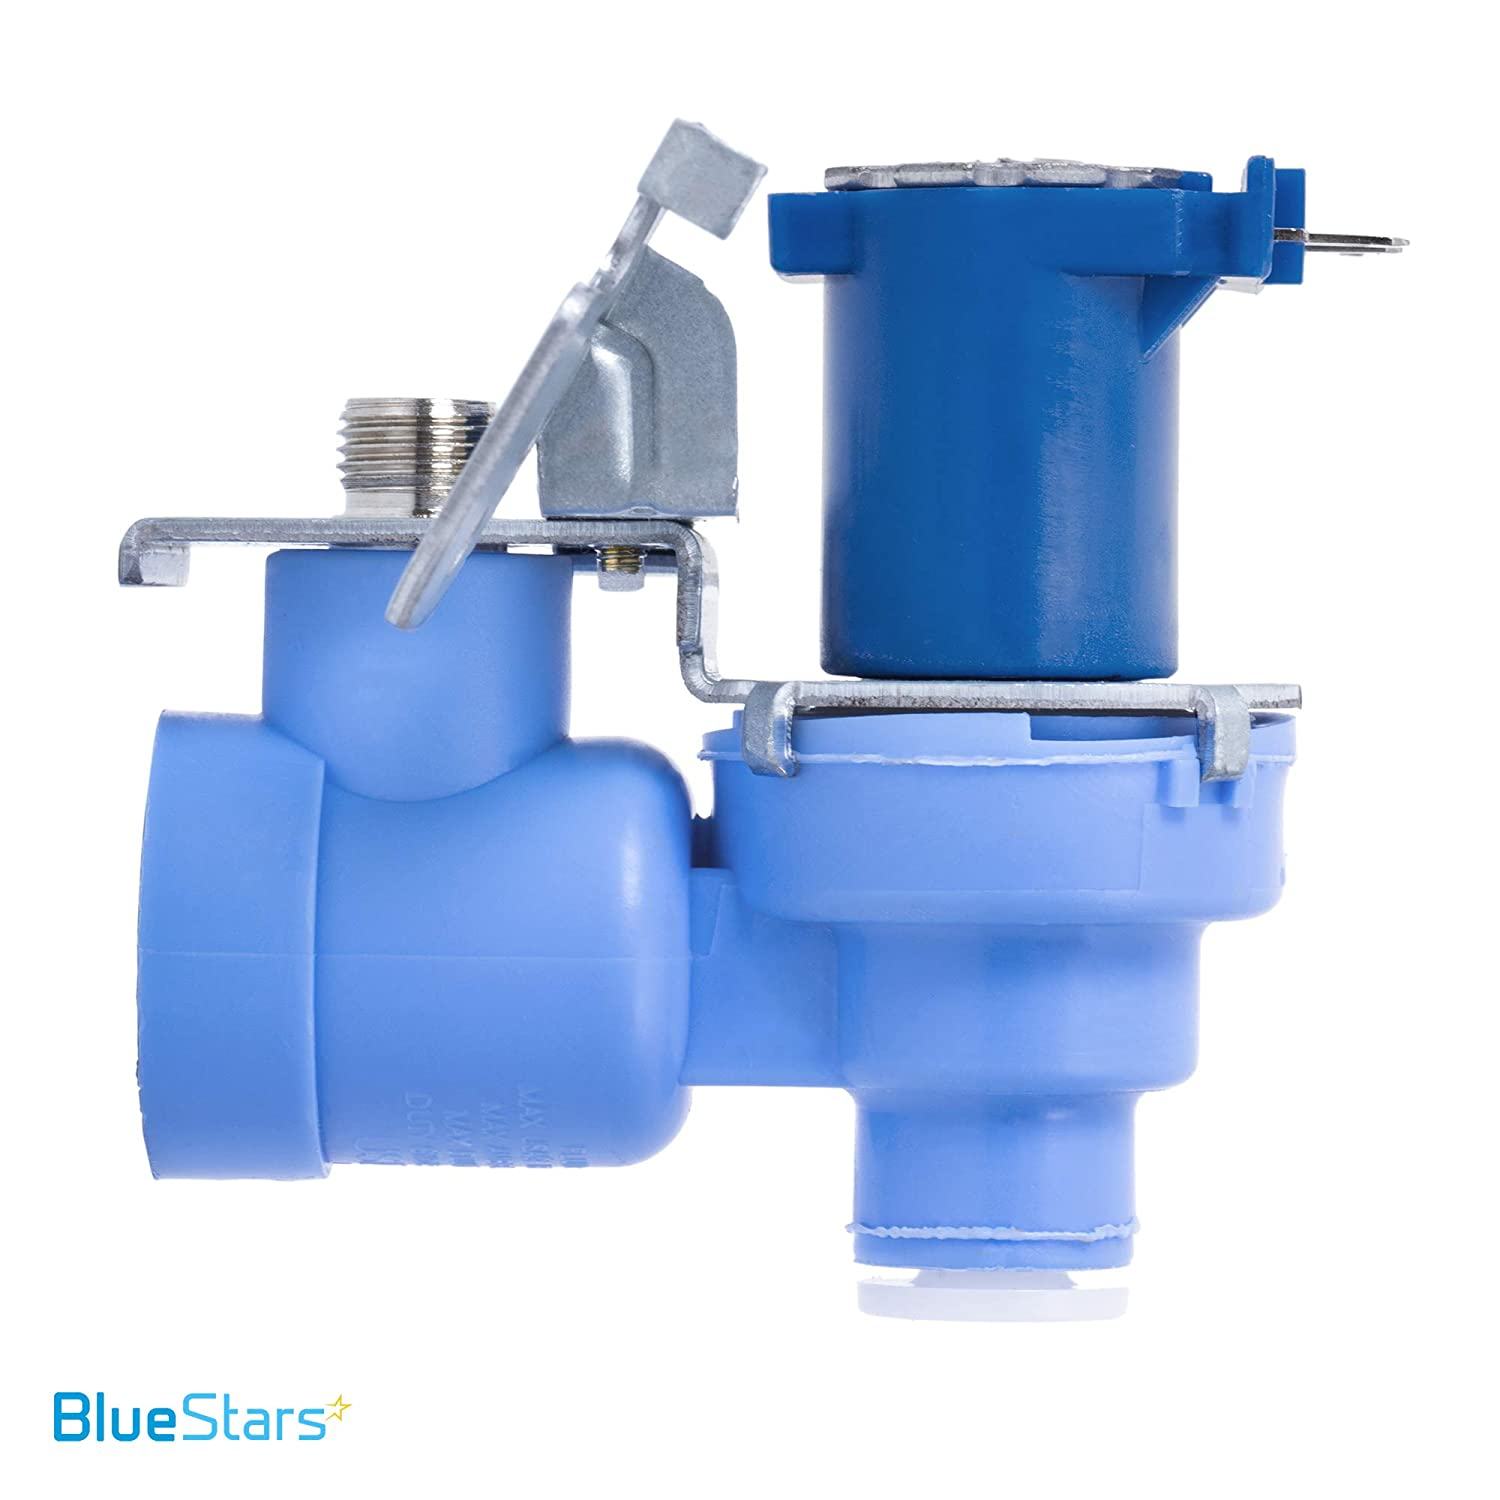 Exact Fit for LG Refrigerators PS3536019 Replaces AP4451762 Ultra Durable MJX41178908 Refrigerator Water Valve Replacement Part by Blue Stars